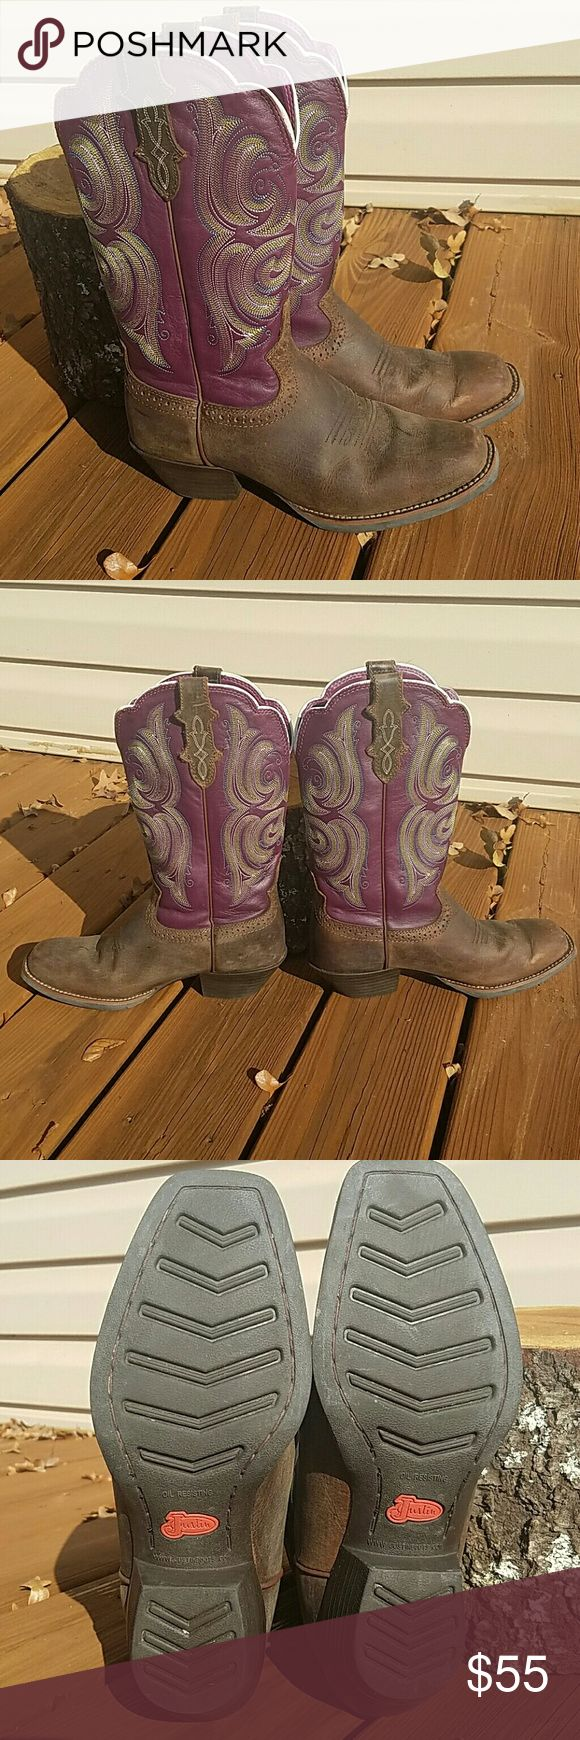 Purple Justin cowboy boots Purple and brown Justin leather cowboy boots, style L2567, with lime green and blue embroidery on the shaft. Brown/tan distressed Buffalo with a wide square toe.Very good condition, maybe worn three to five times. Got these for my daughter for Christmas last year, and she never wore them. Justin Boots Shoes Heeled Boots